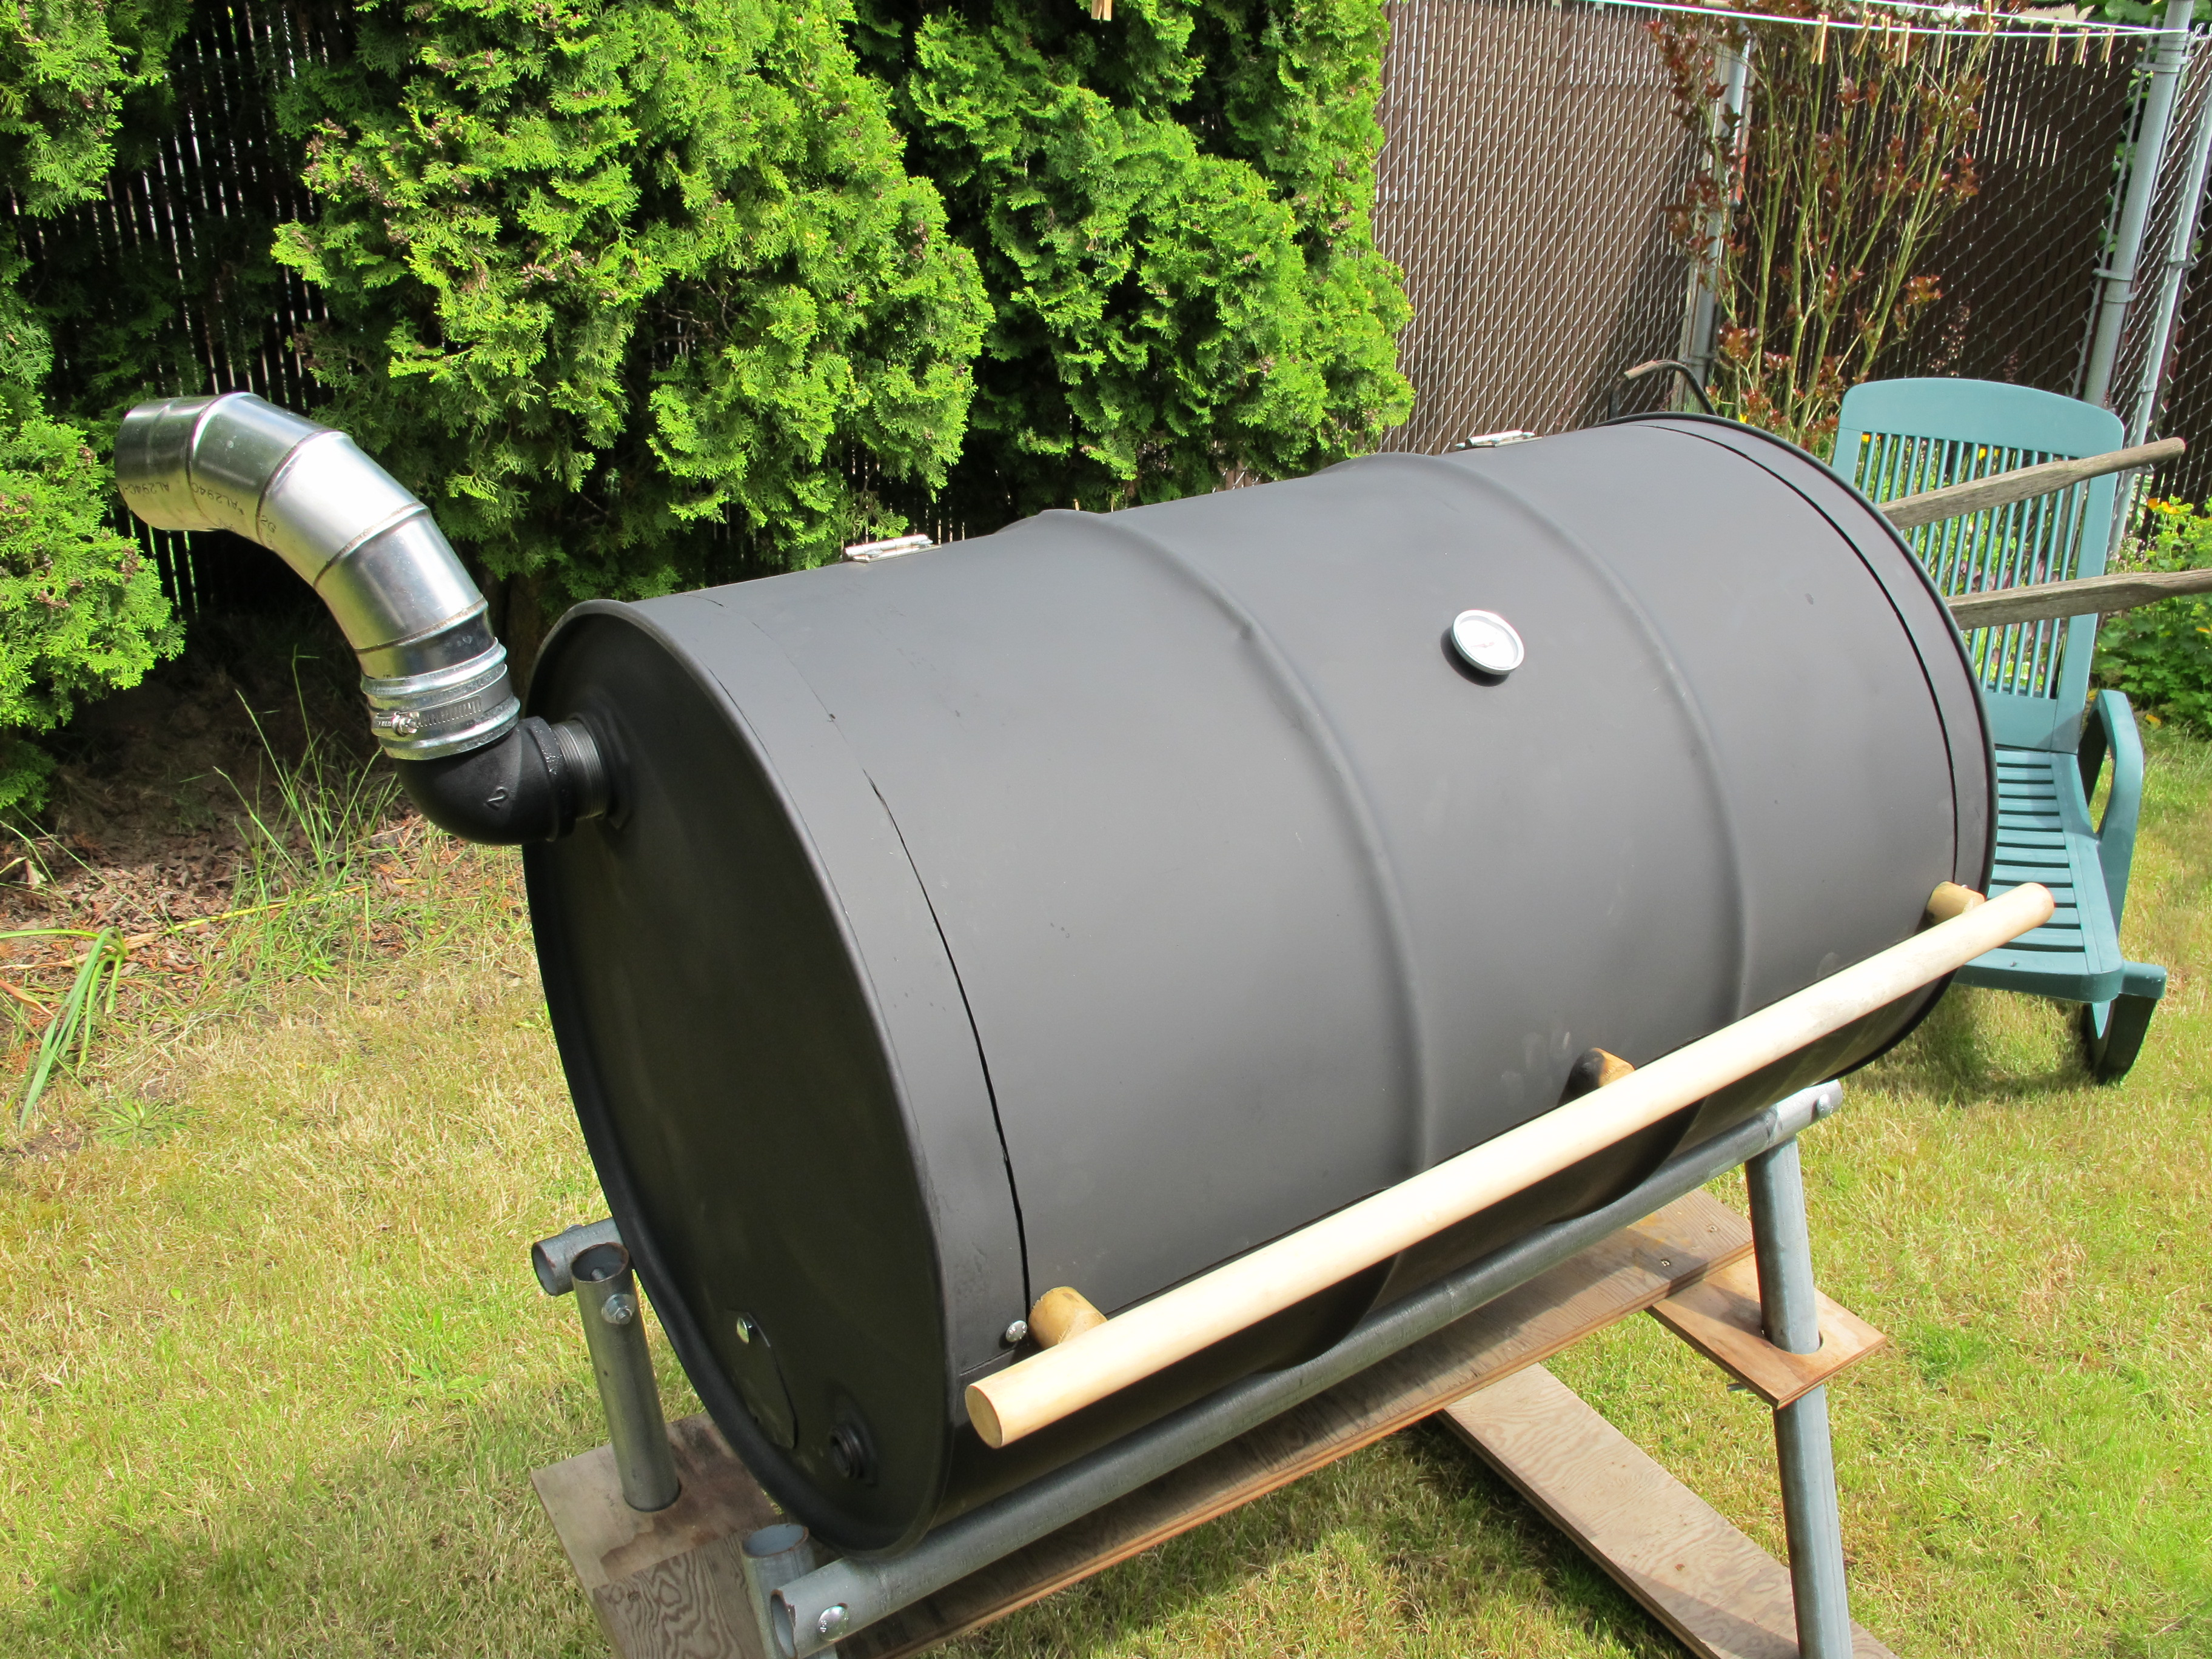 How To Build Your Own Bbq Barrel 5 Steps With Pictures Instructables,Designer Filing Cabinets